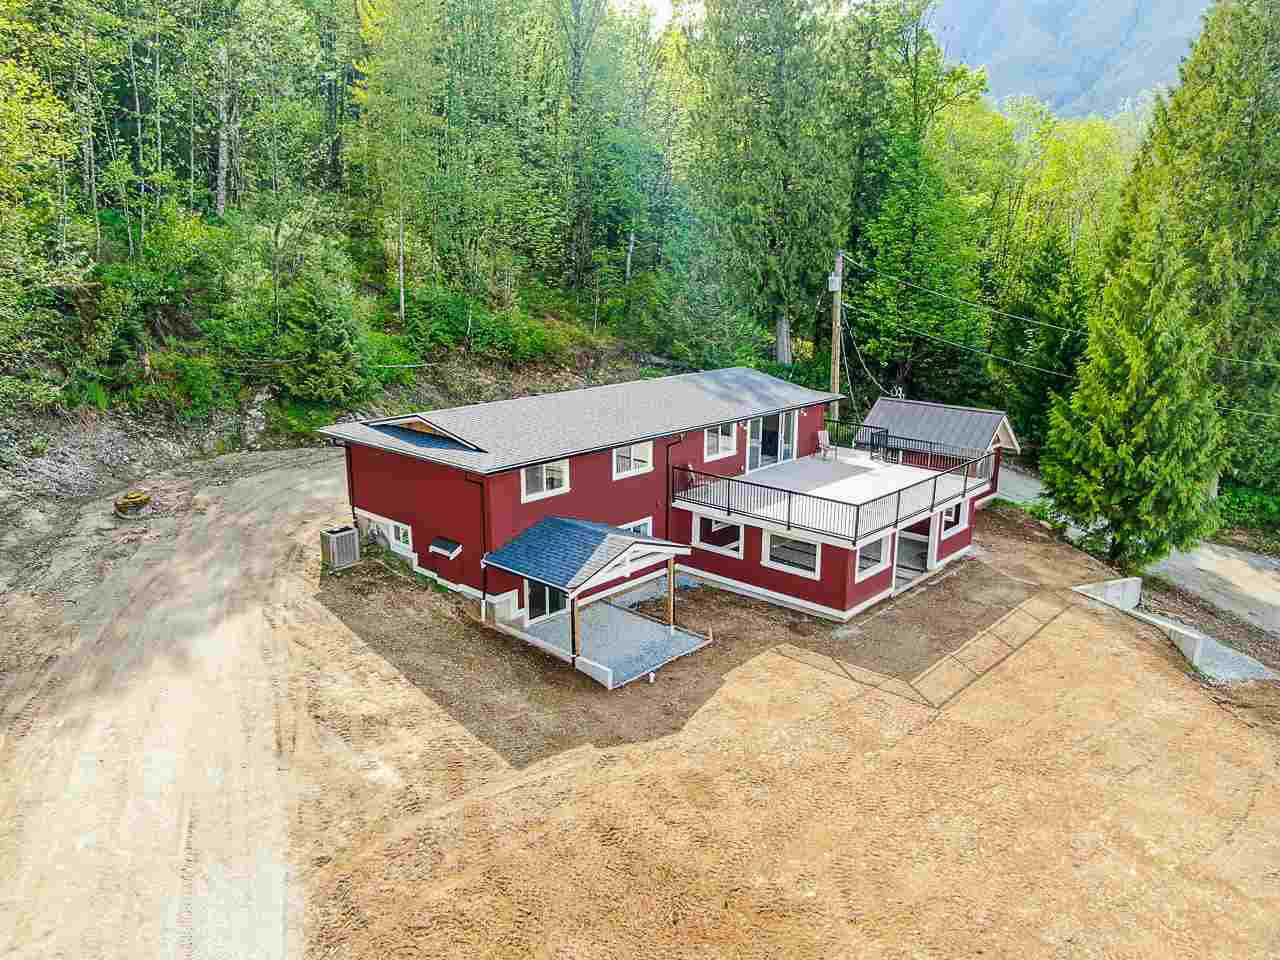 """Main Photo: 44390 BAYVIEW Road in Mission: Lake Errock House for sale in """"LAKE ERROCK - BAYVIEW"""" : MLS®# R2453560"""